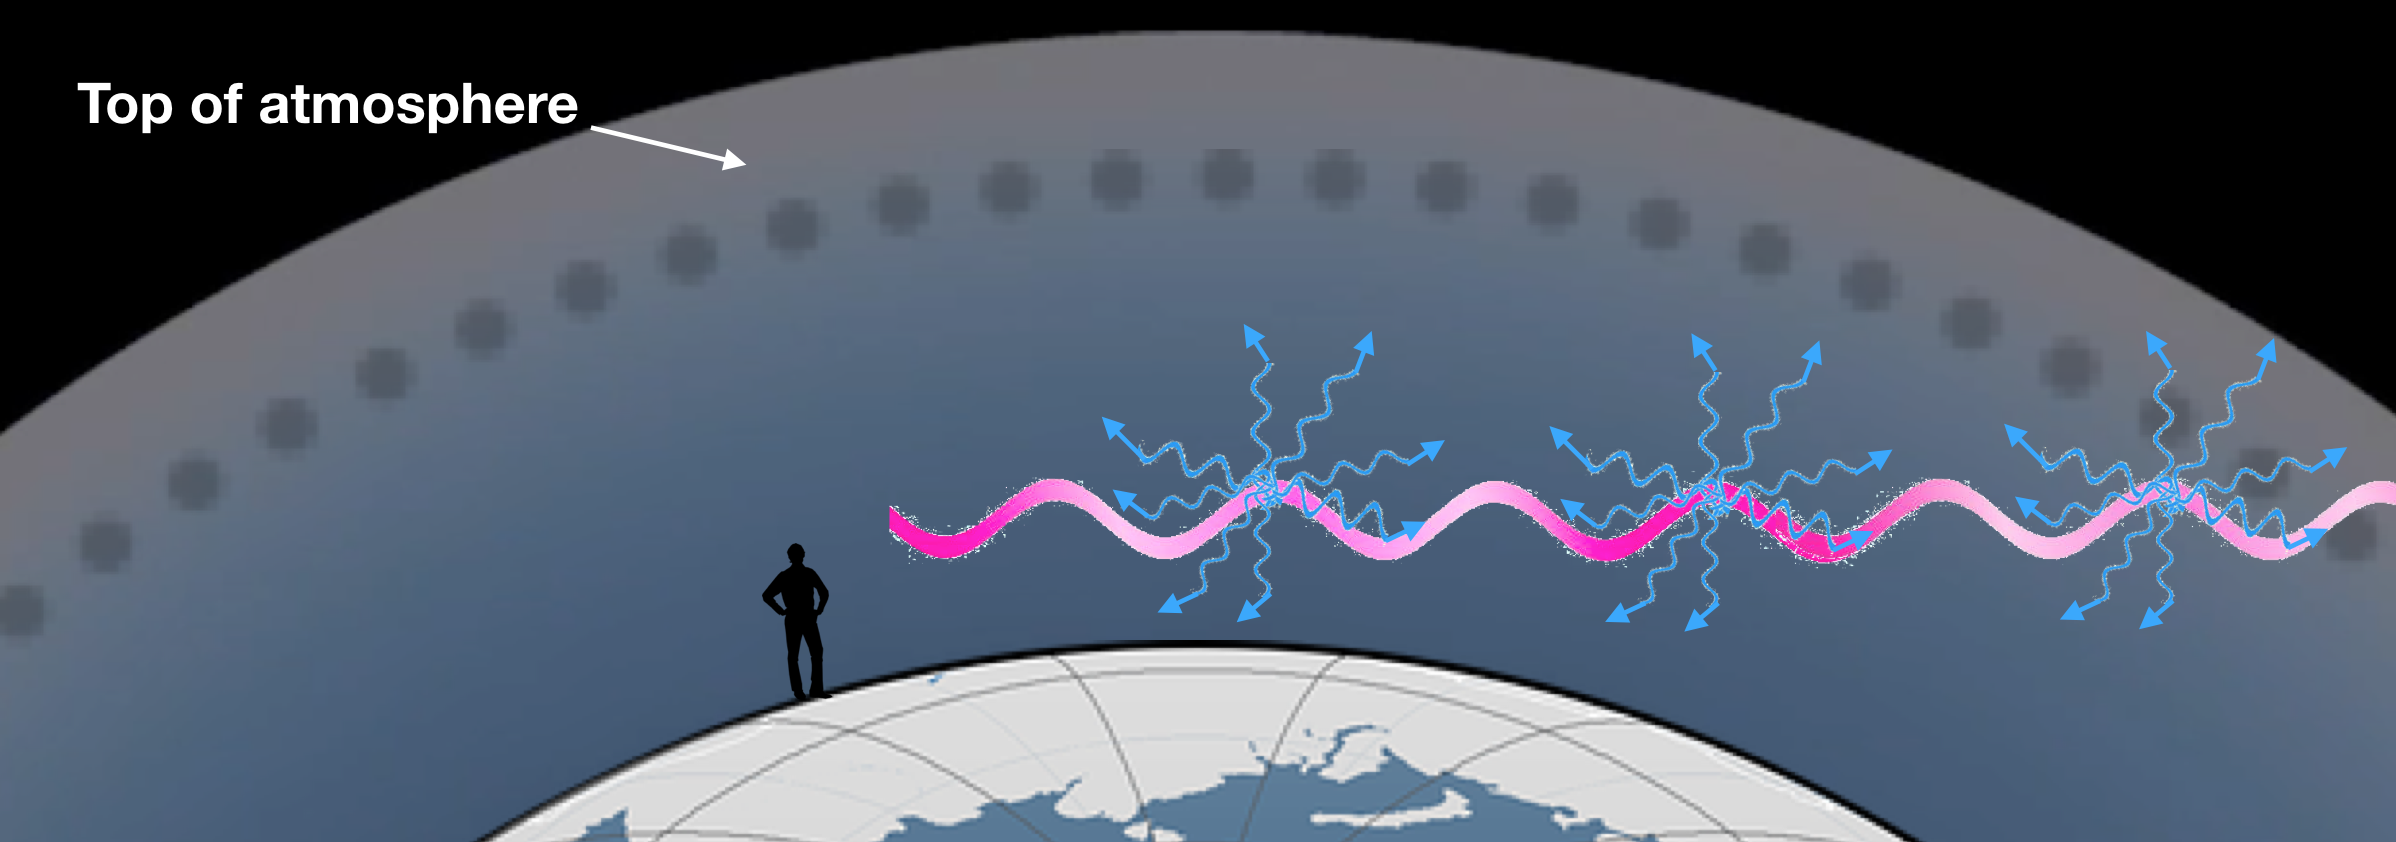 Artist's impression of Rayleigh Scattering when sun is low on the horizon